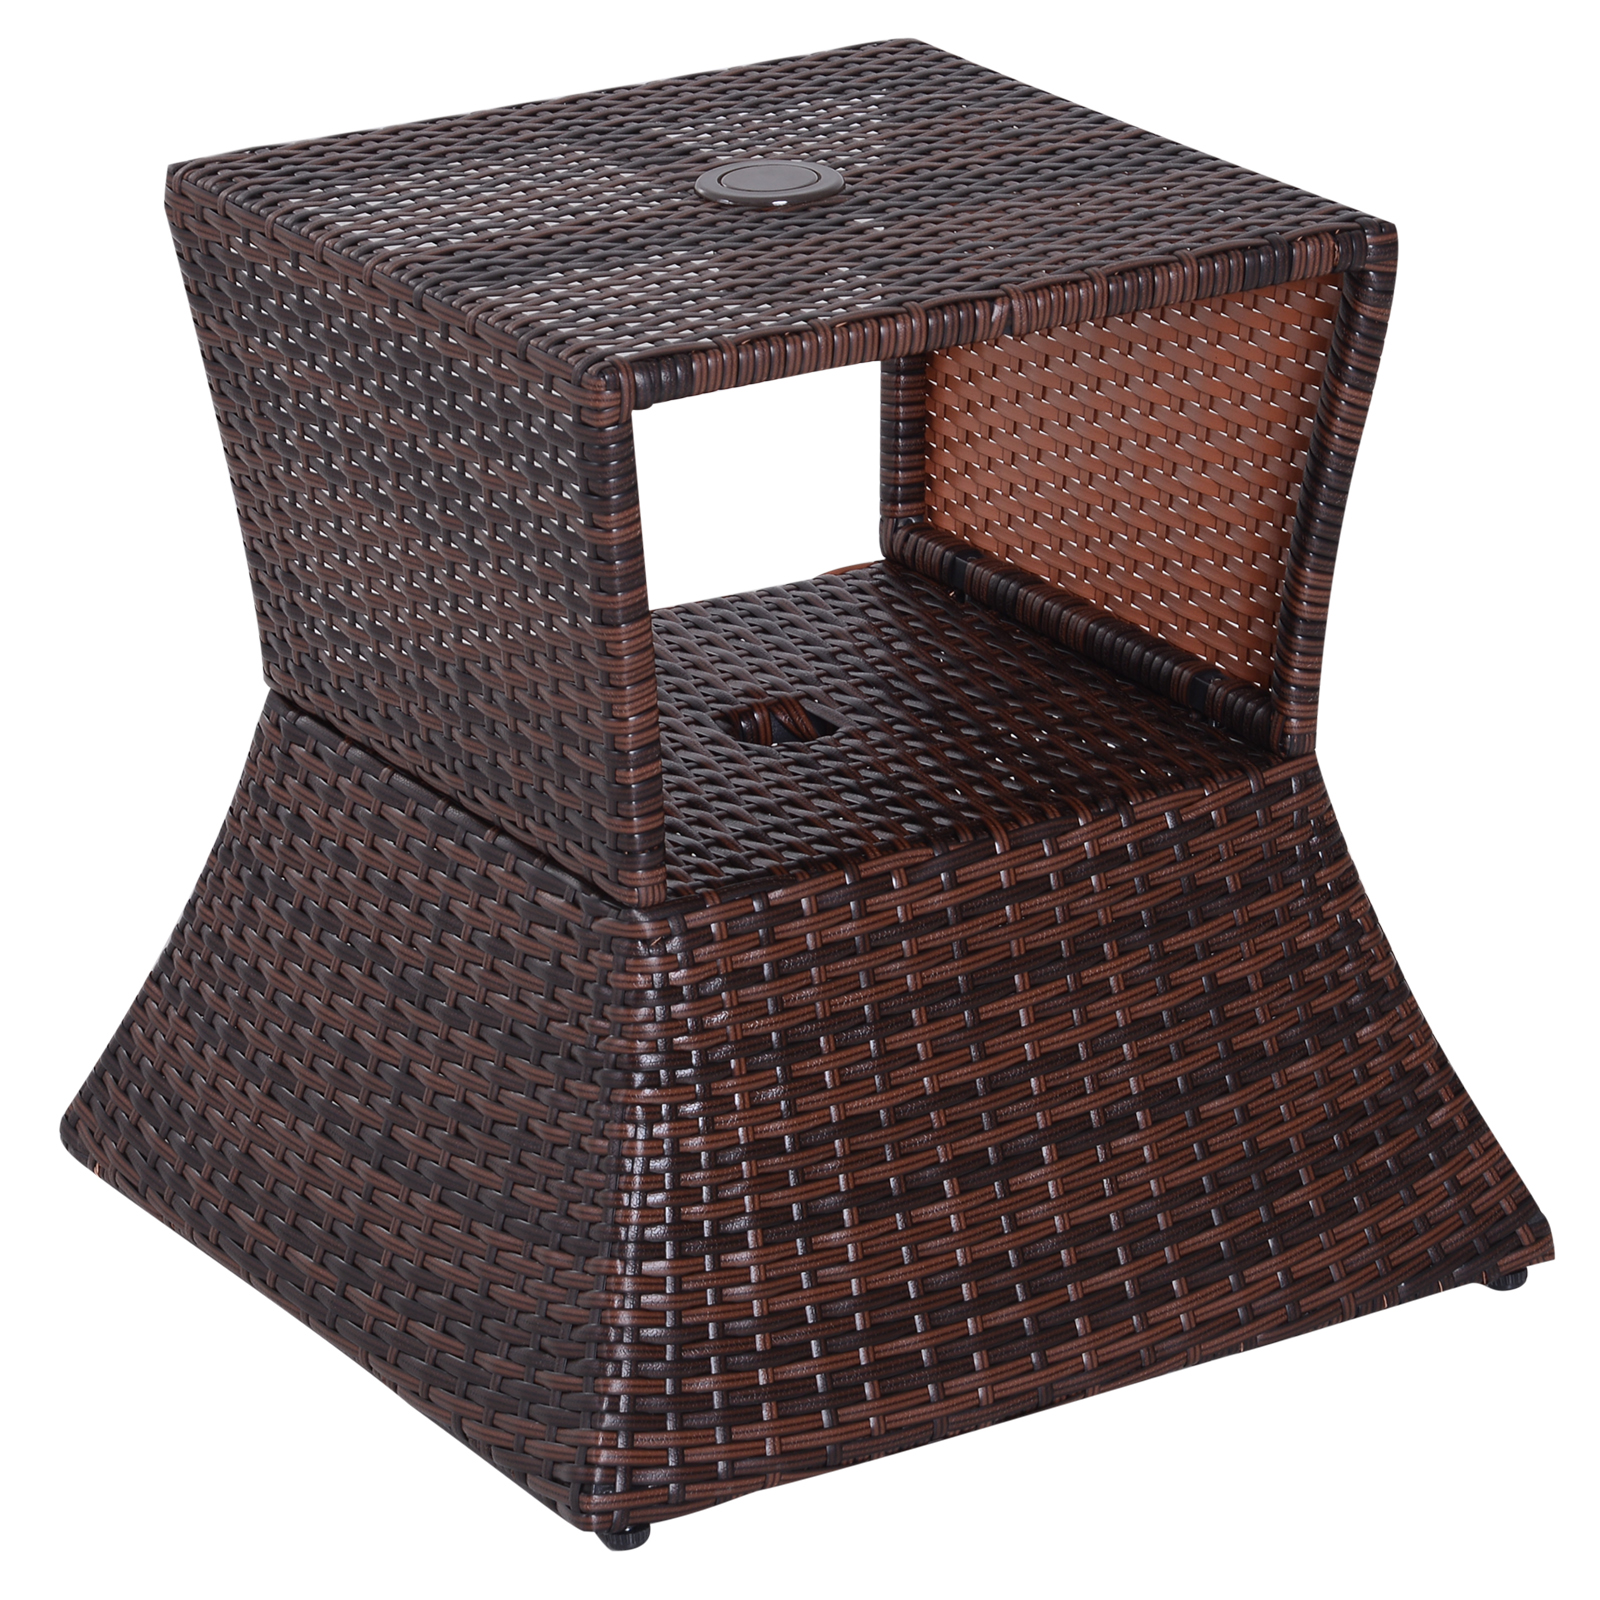 outsunny wicker rattan outdoor patio side table with umbrella hole